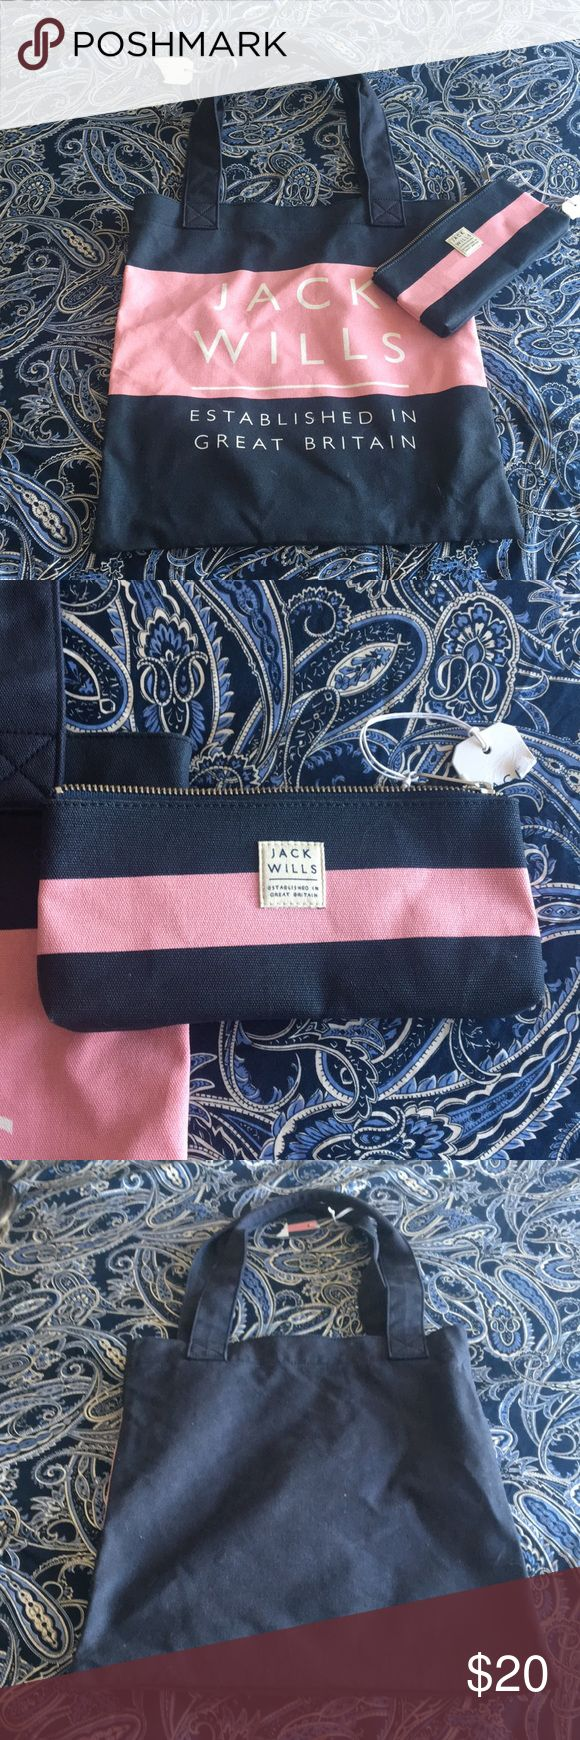 NWT Jack Wills clutch tote&wallet Pink and Navy canvas tote with matching wallet. Straight from London flagship! Bags Totes